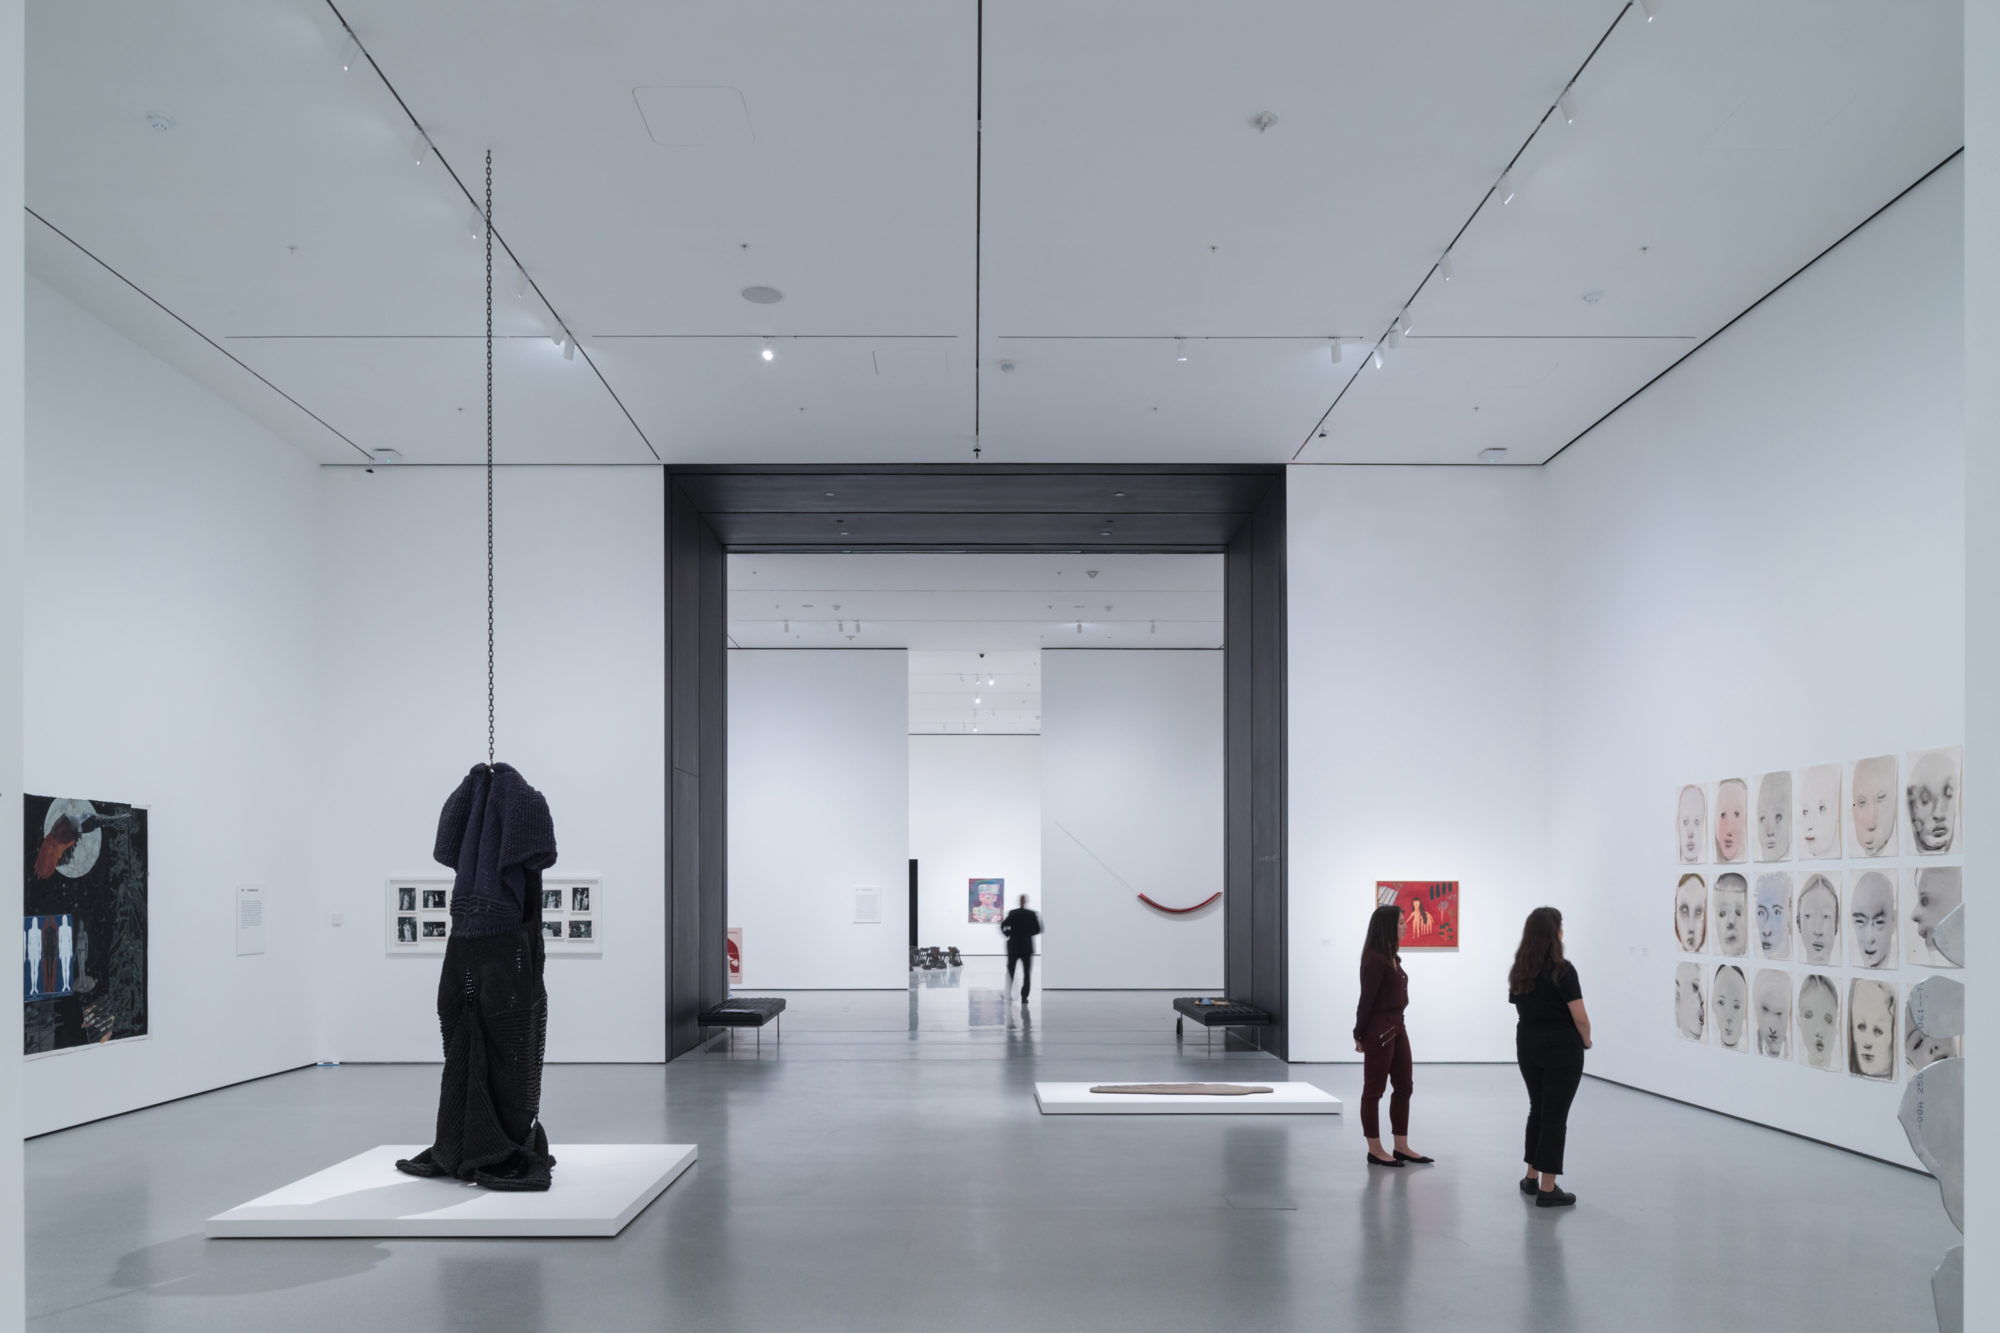 moma free classes, <b> Museum of Modern Art (MoMA) offers free art courses for photography, fashion, more </b>